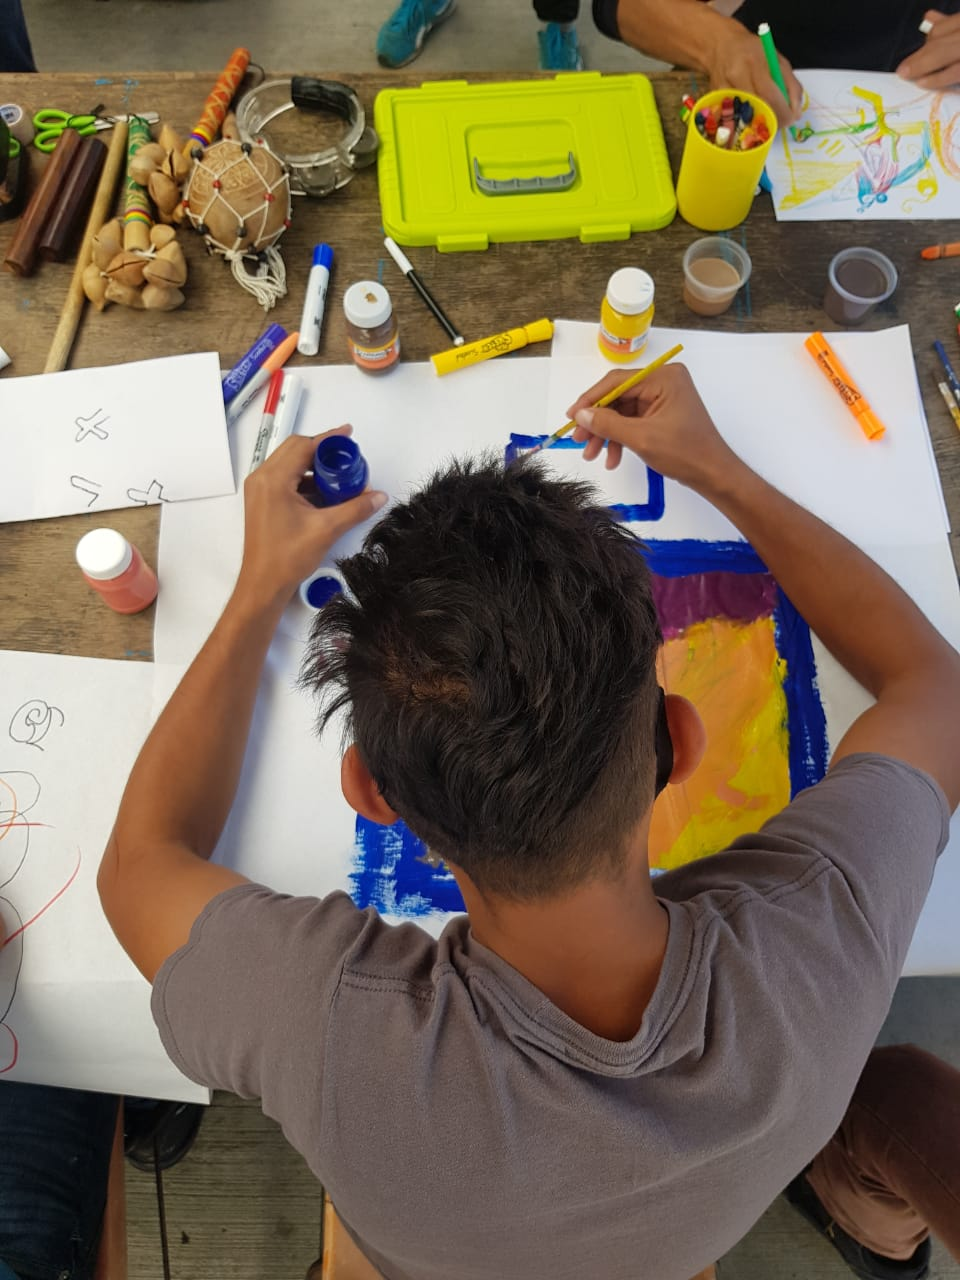 Overhead view of a person painting a colorful abstract image at a table full of art supplies